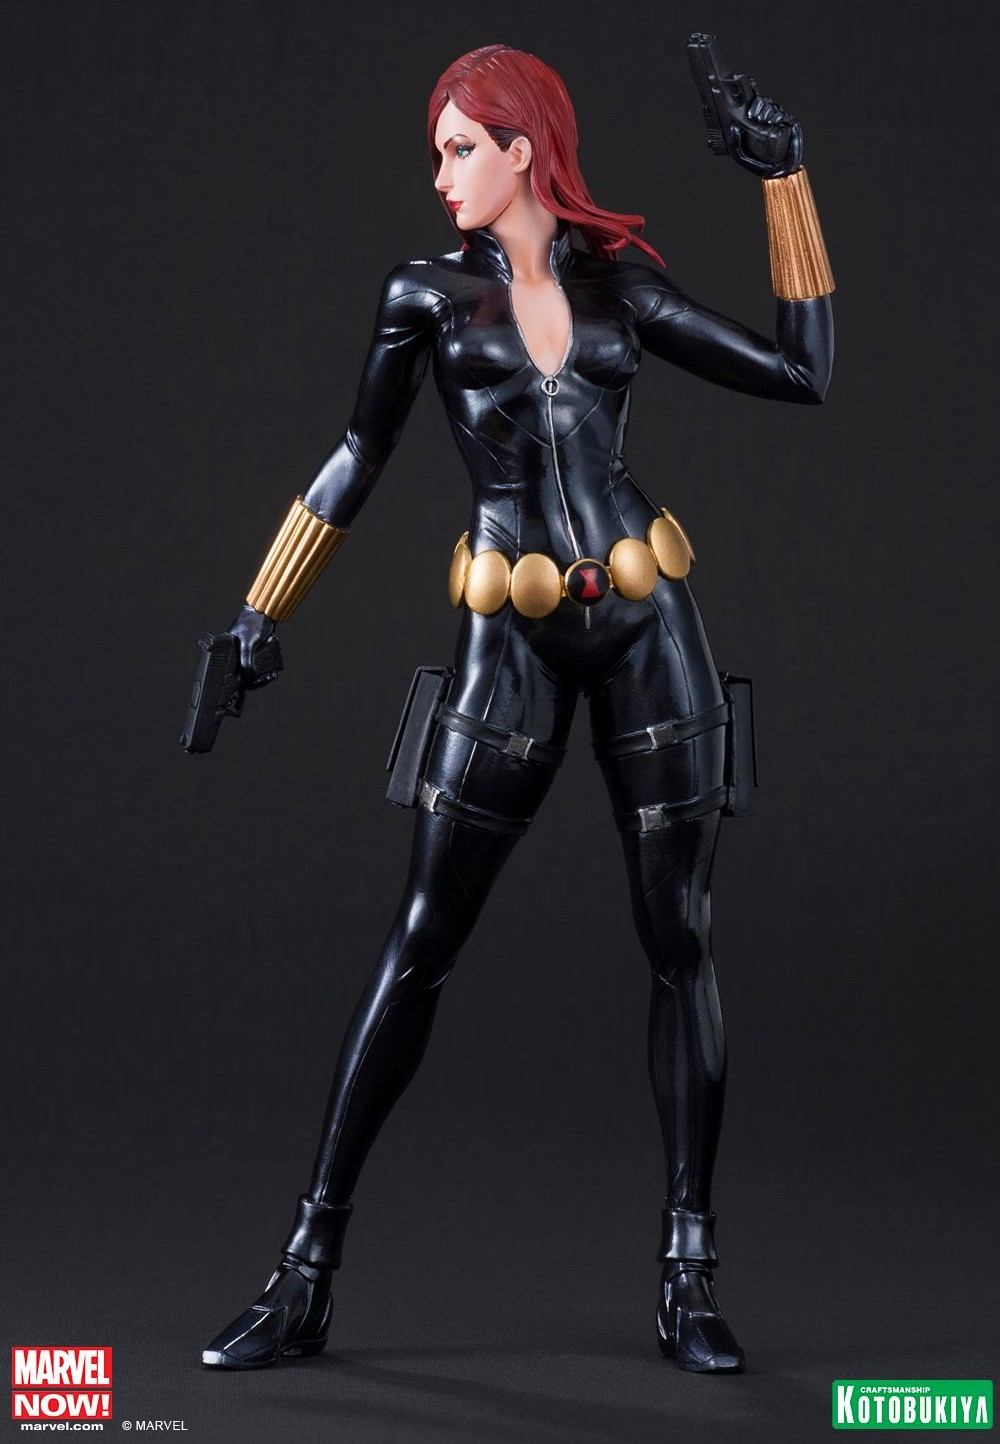 [Iron Studios] The Avengers: Black Widow Statue 1/10 scale - Página 6 Avengers-Kotobukiya-Black-Widow-ArtFX+-Statue-Front-2013-e1380913557106